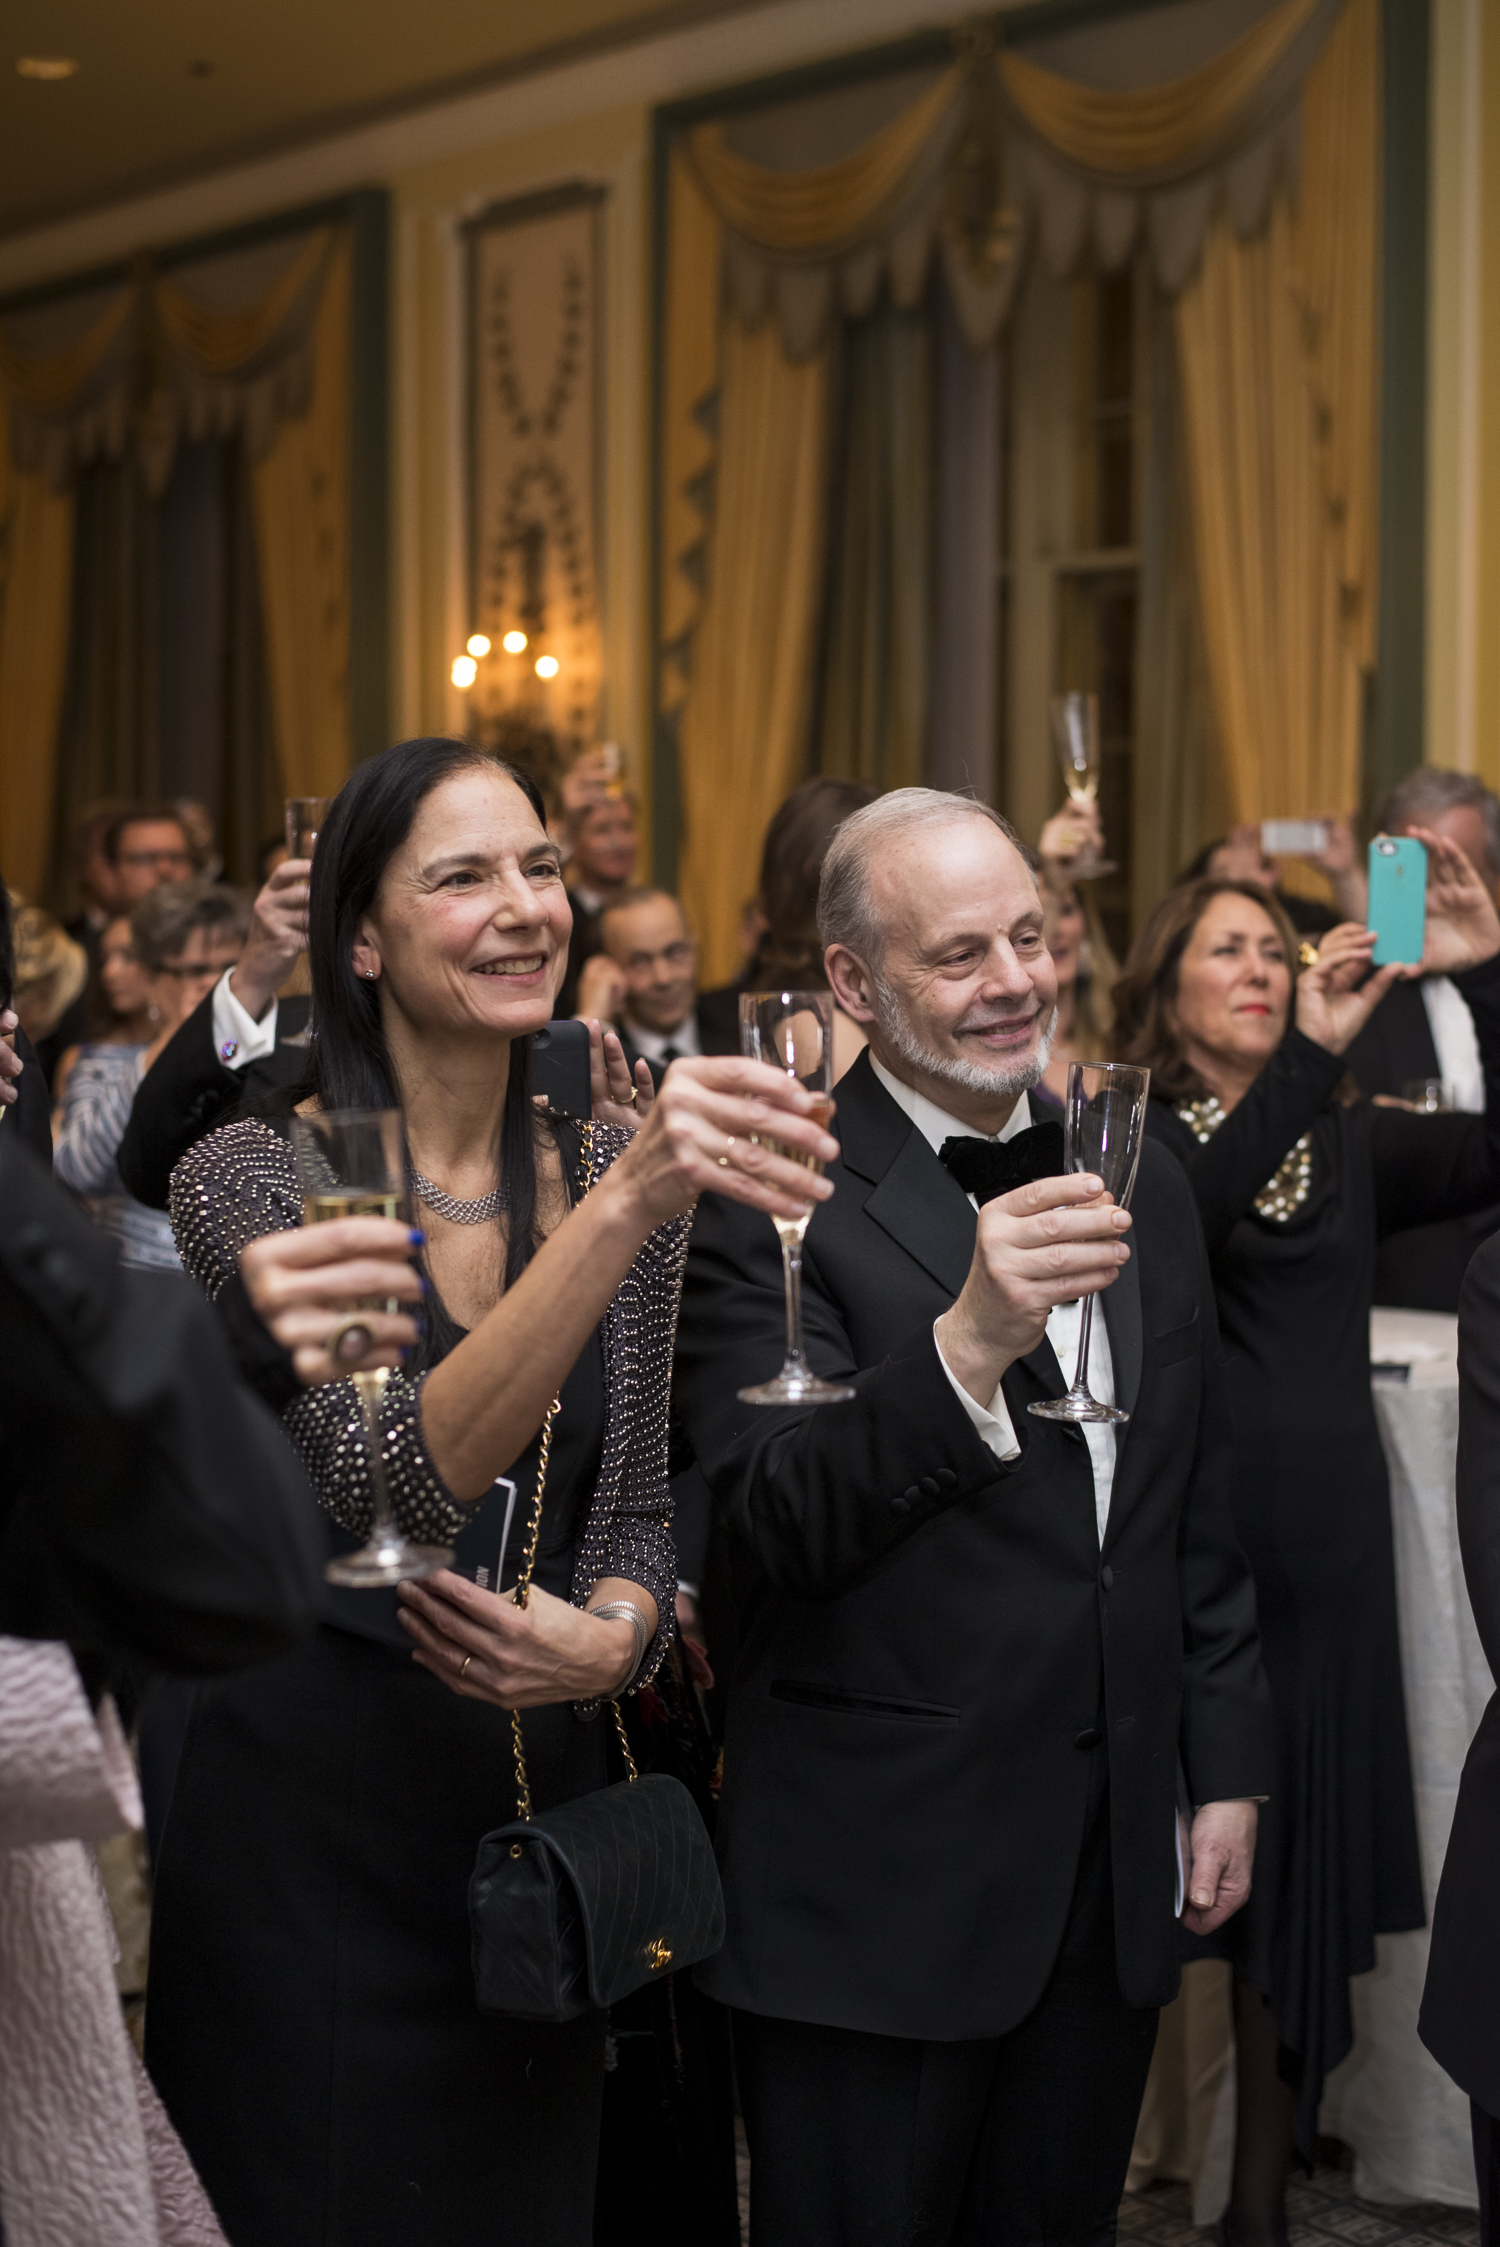 Guests at the 2015 Drama League Gala Event honoring James Earl Jones, hosted at the Pierre Hotel in NYC.